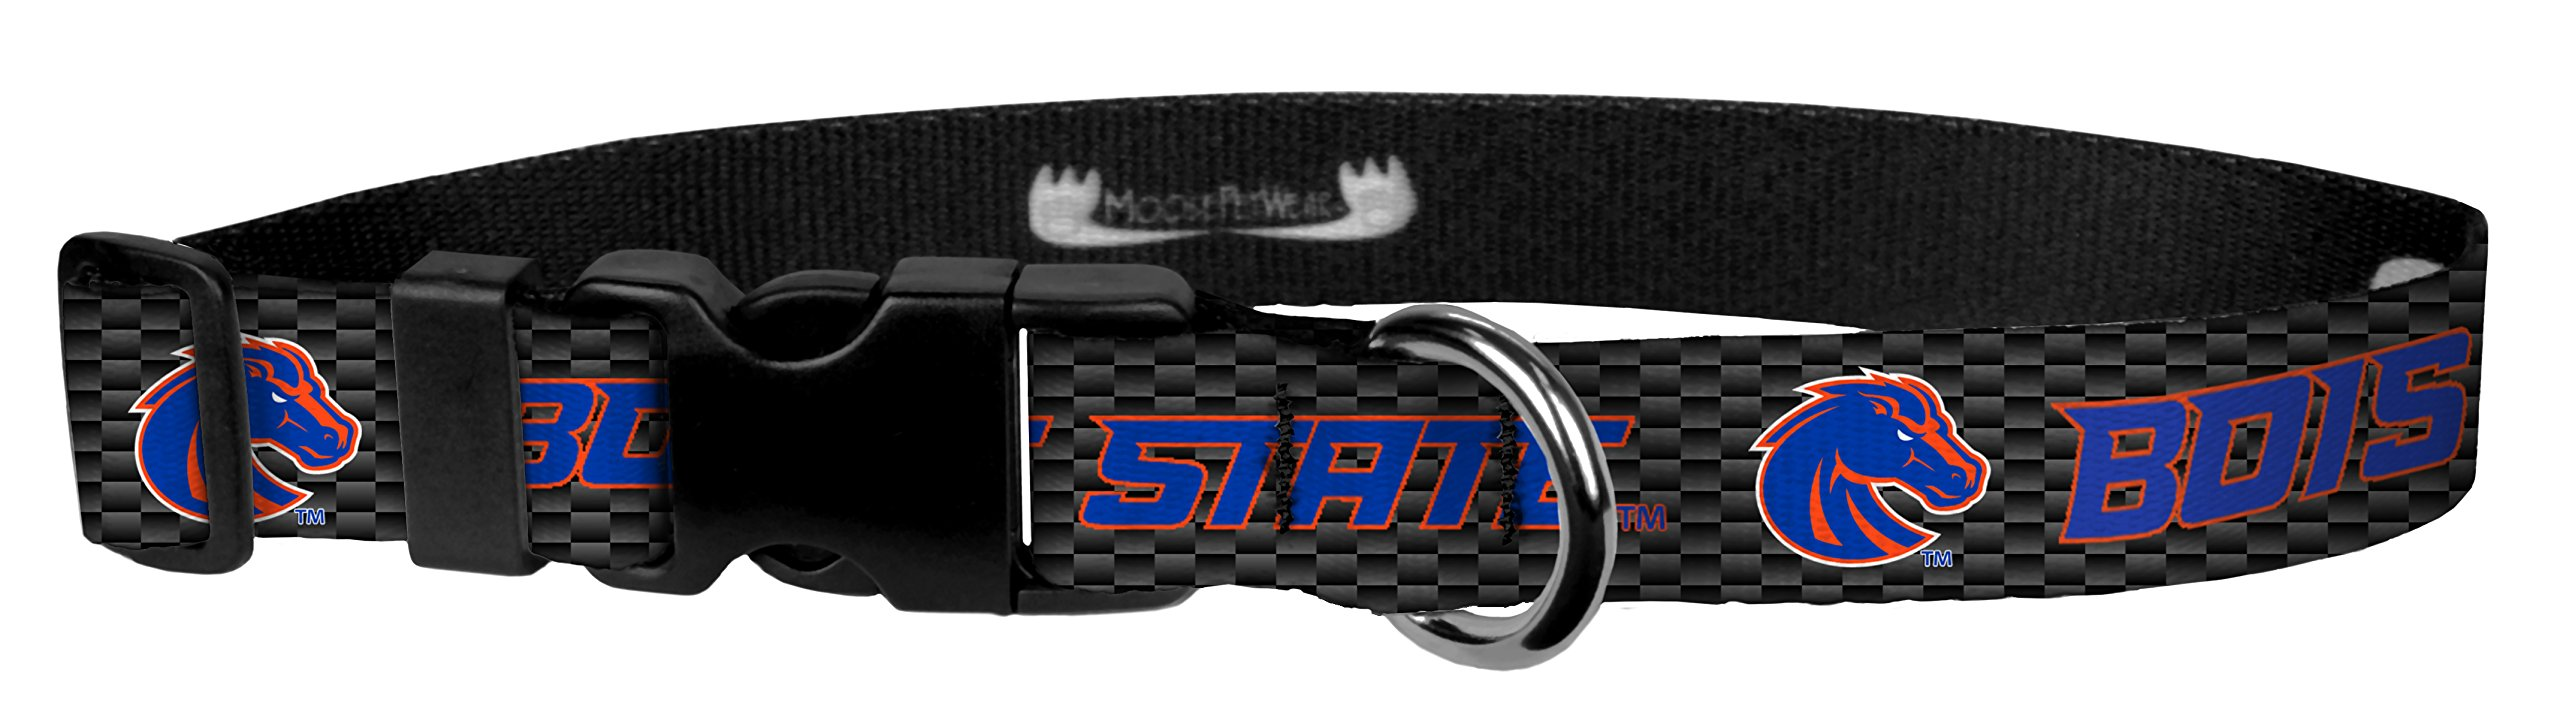 Moose Pet Wear Dog Collar - Boise State University Adjustable Pet Collars, Made in the USA - 3/4 Inch Wide, Small, Carbon Fiber